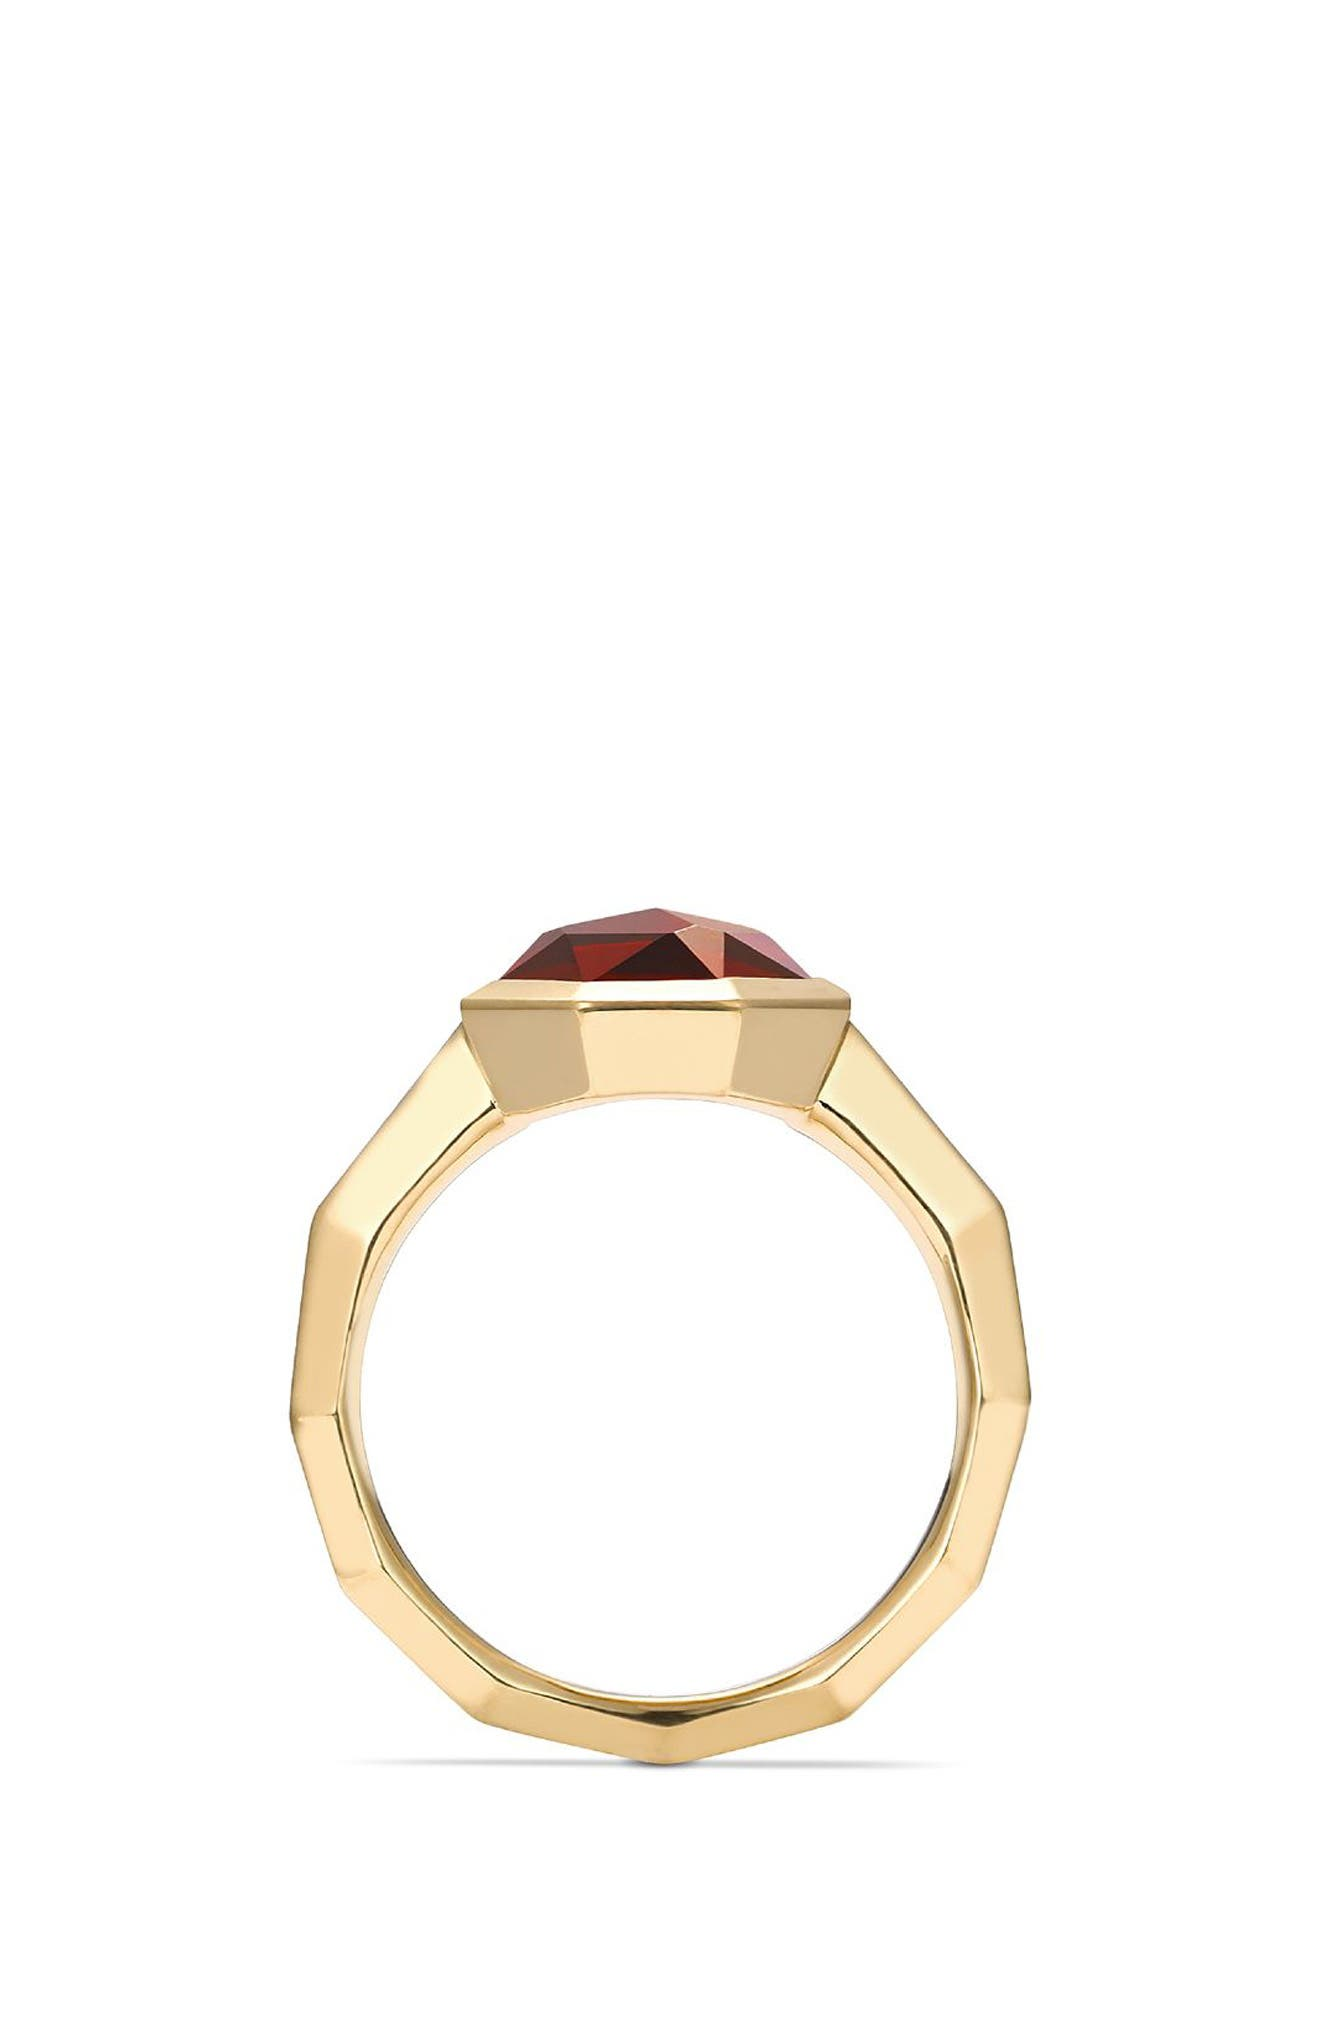 Guilin Octagon Ring with Diamonds in 18K Gold,                             Alternate thumbnail 4, color,                             YELLOW GOLD/ DIAMOND